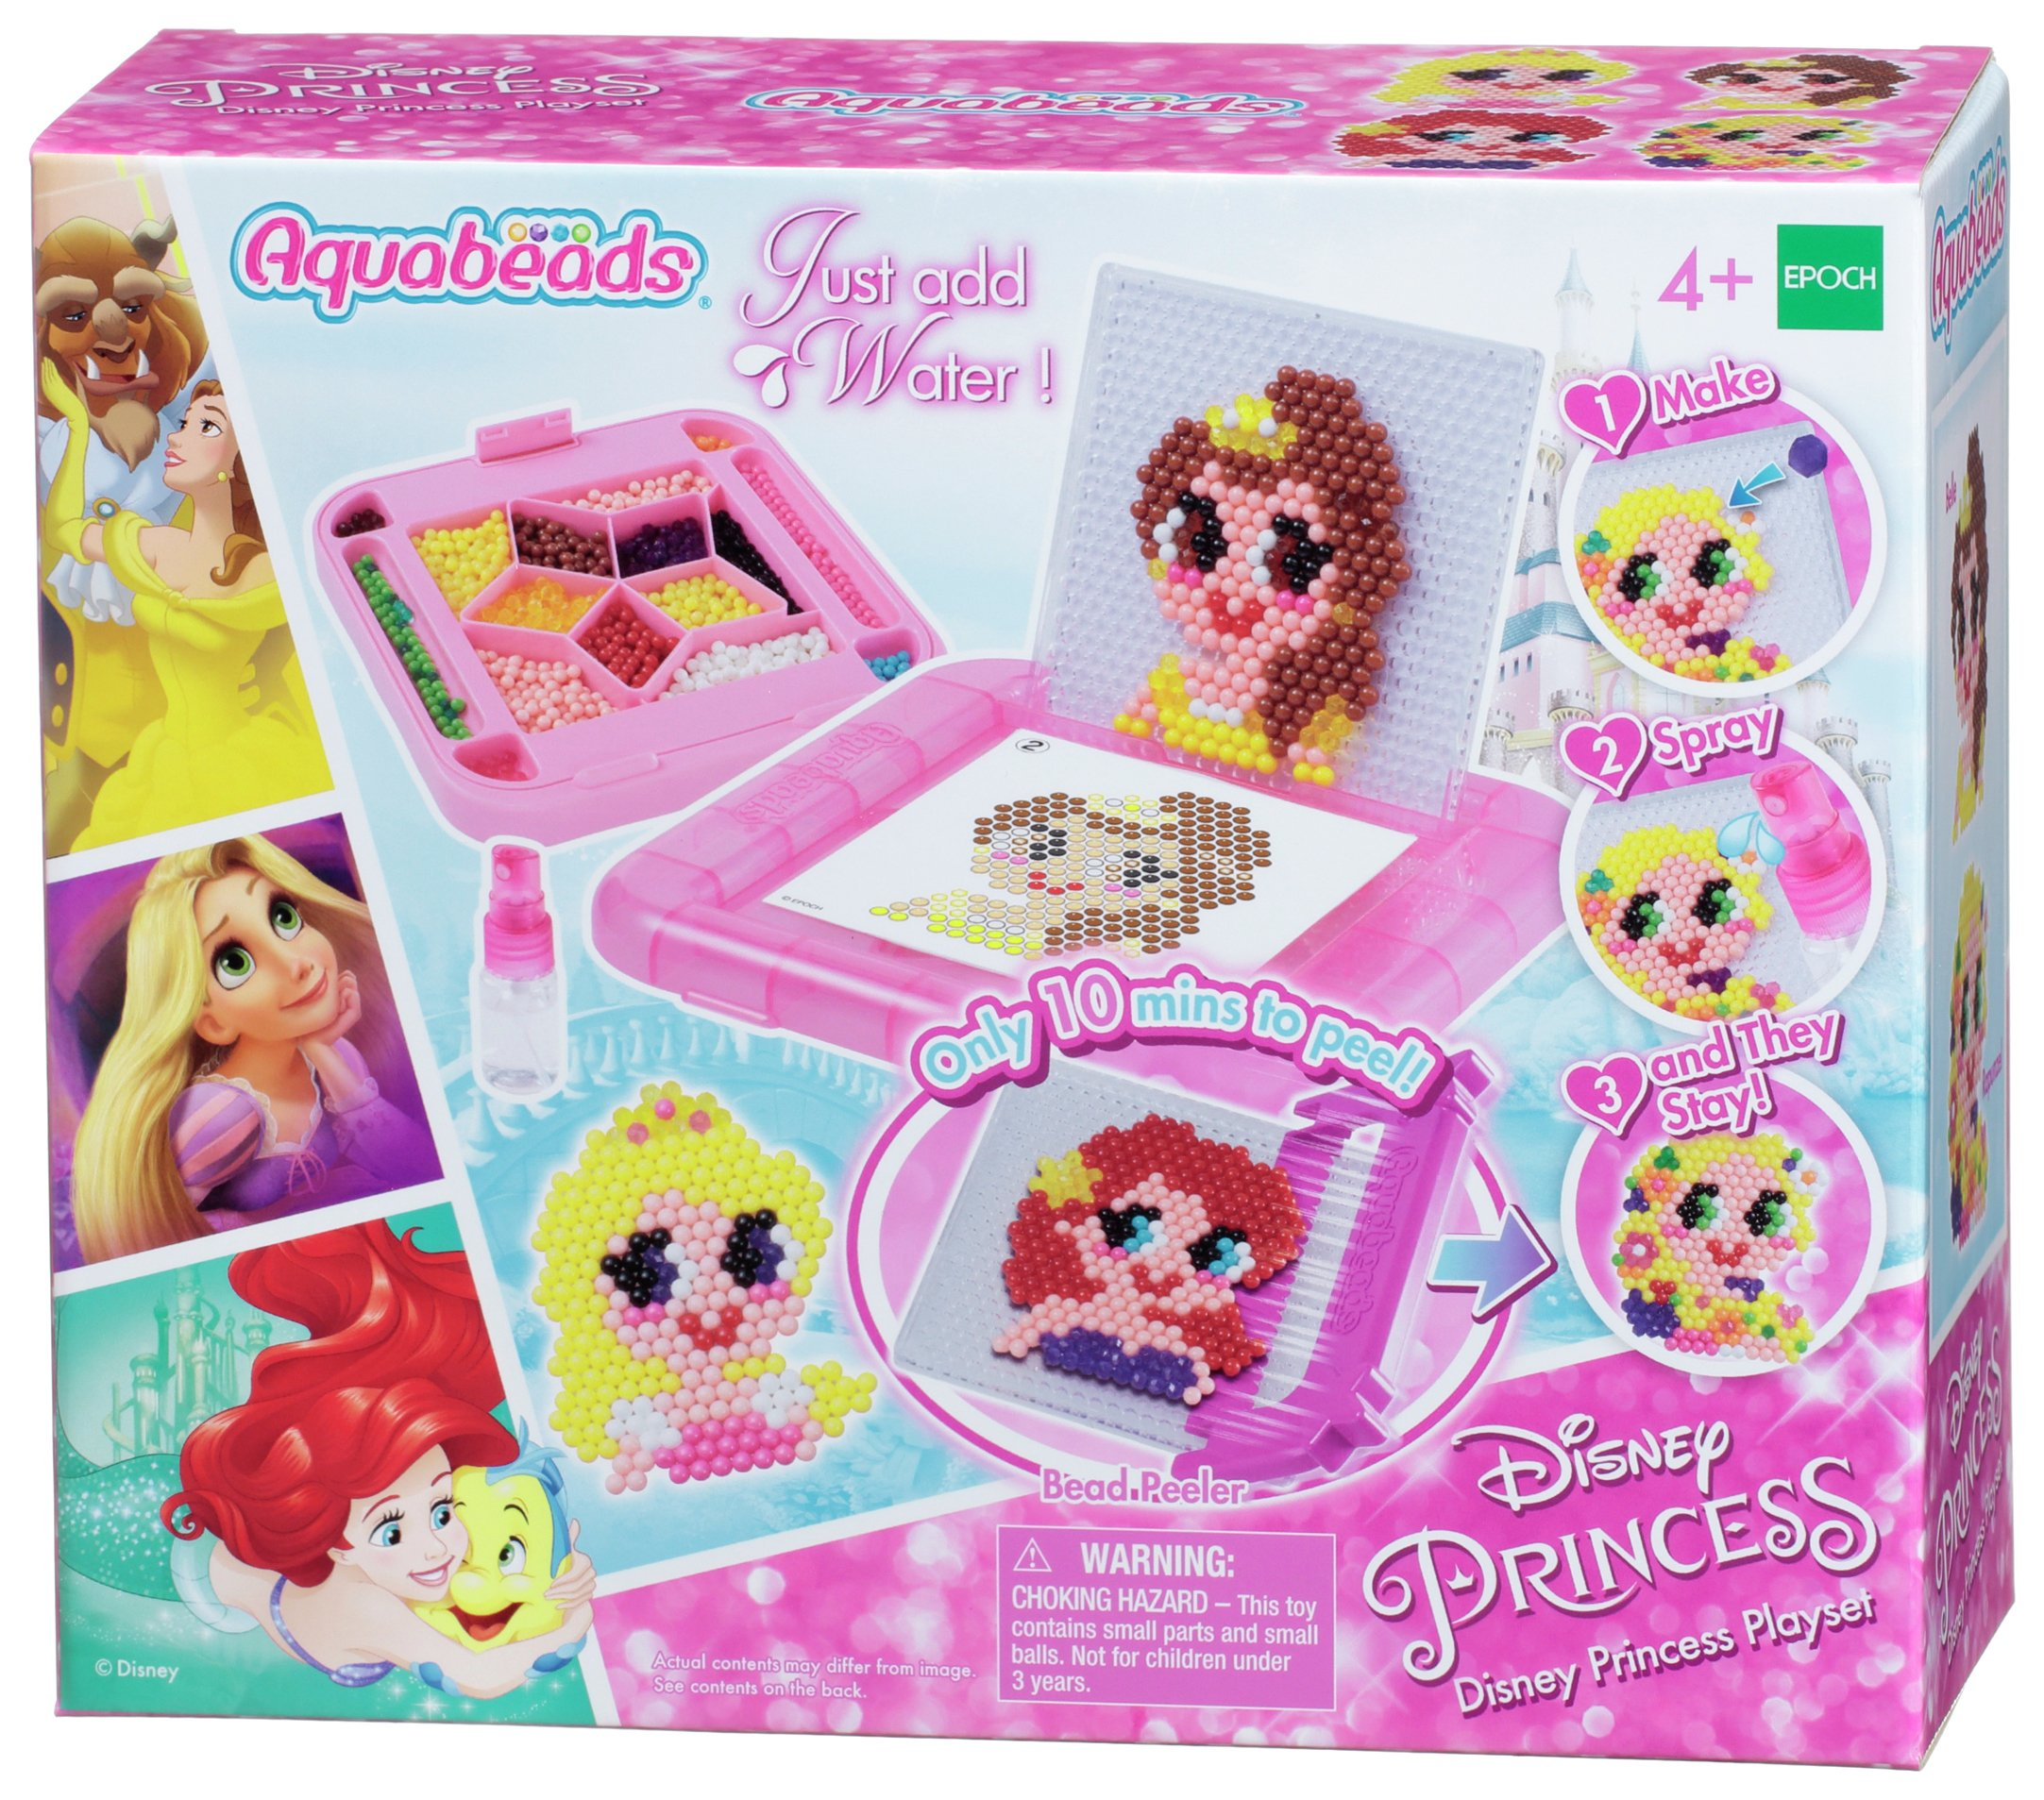 Image of Aquabeads Disney Princess Playset.